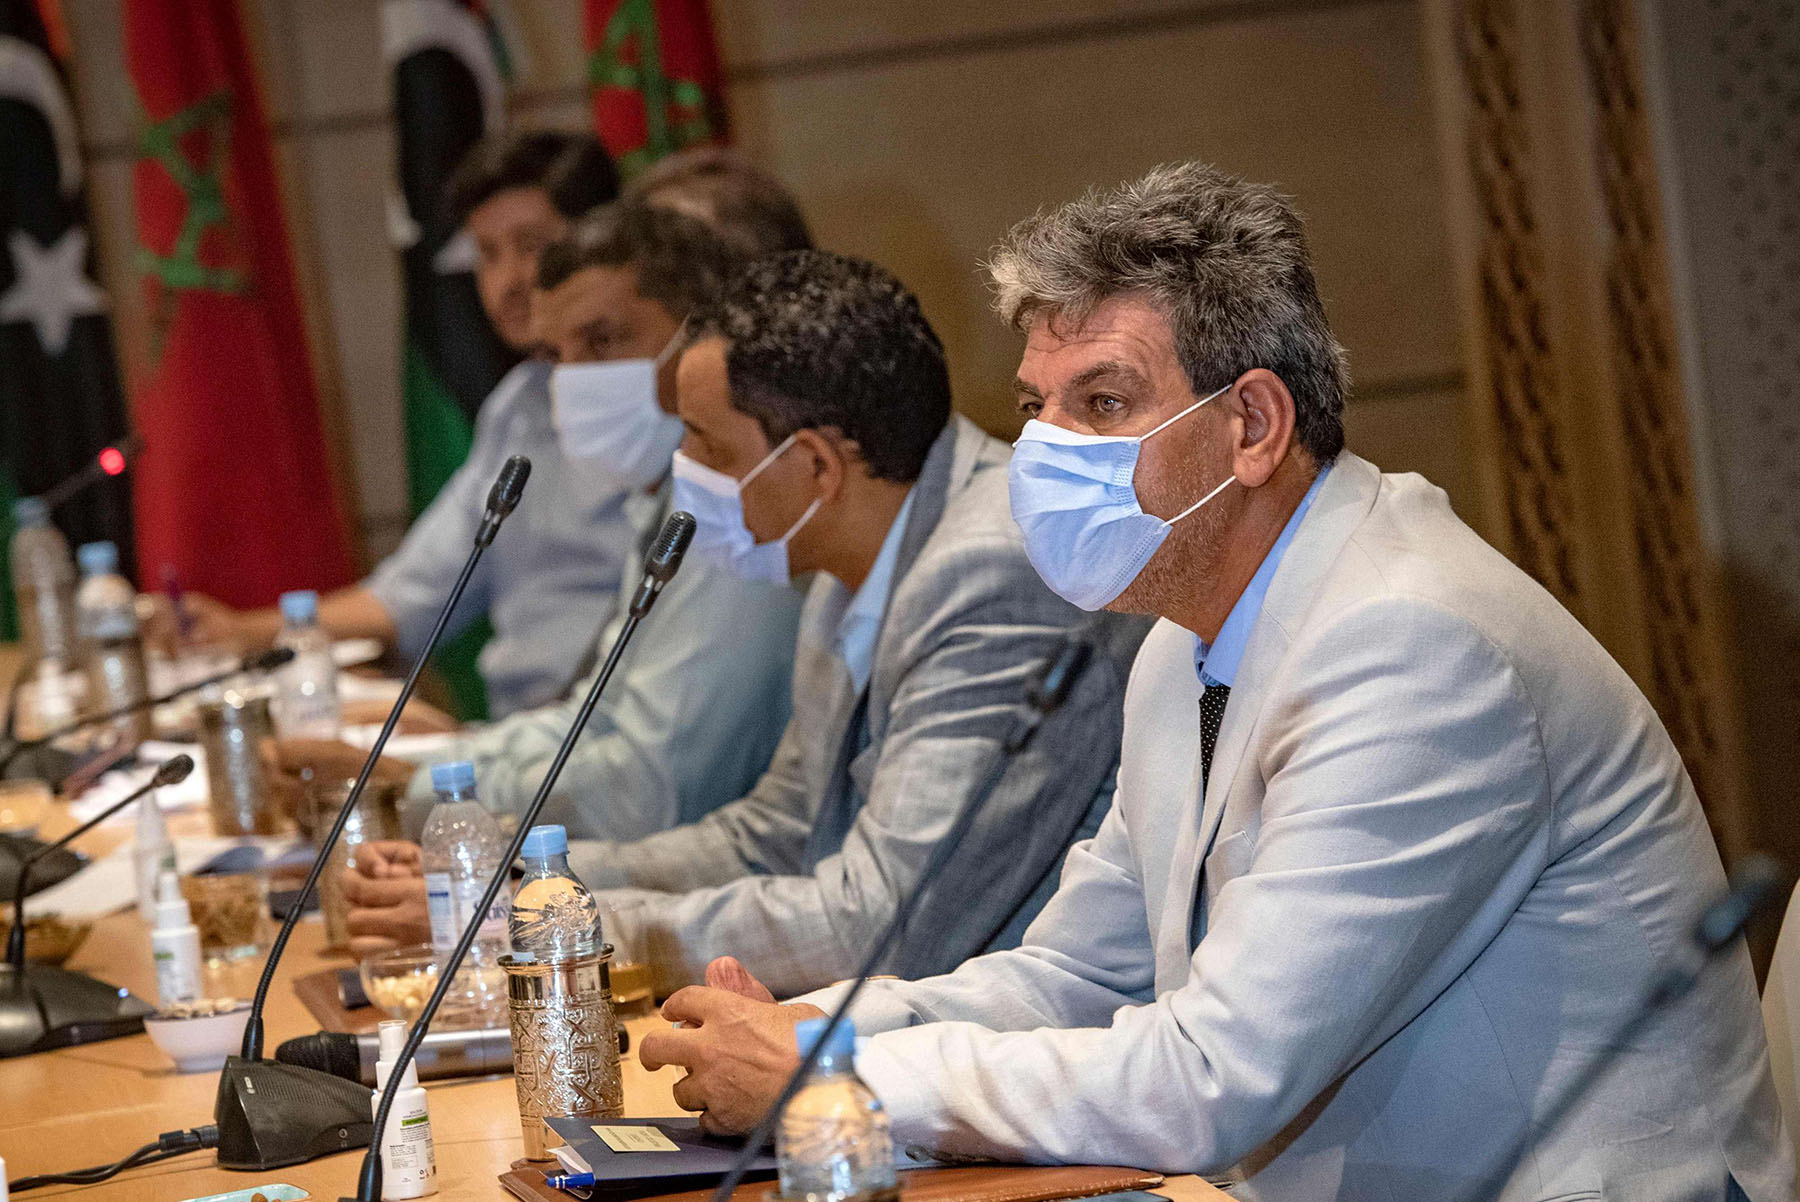 Representatives of Libya's rival administrations attend a meeting in the coastal Moroccan town of Bouznika, south of the capital Rabat, on October 3. (AFP)